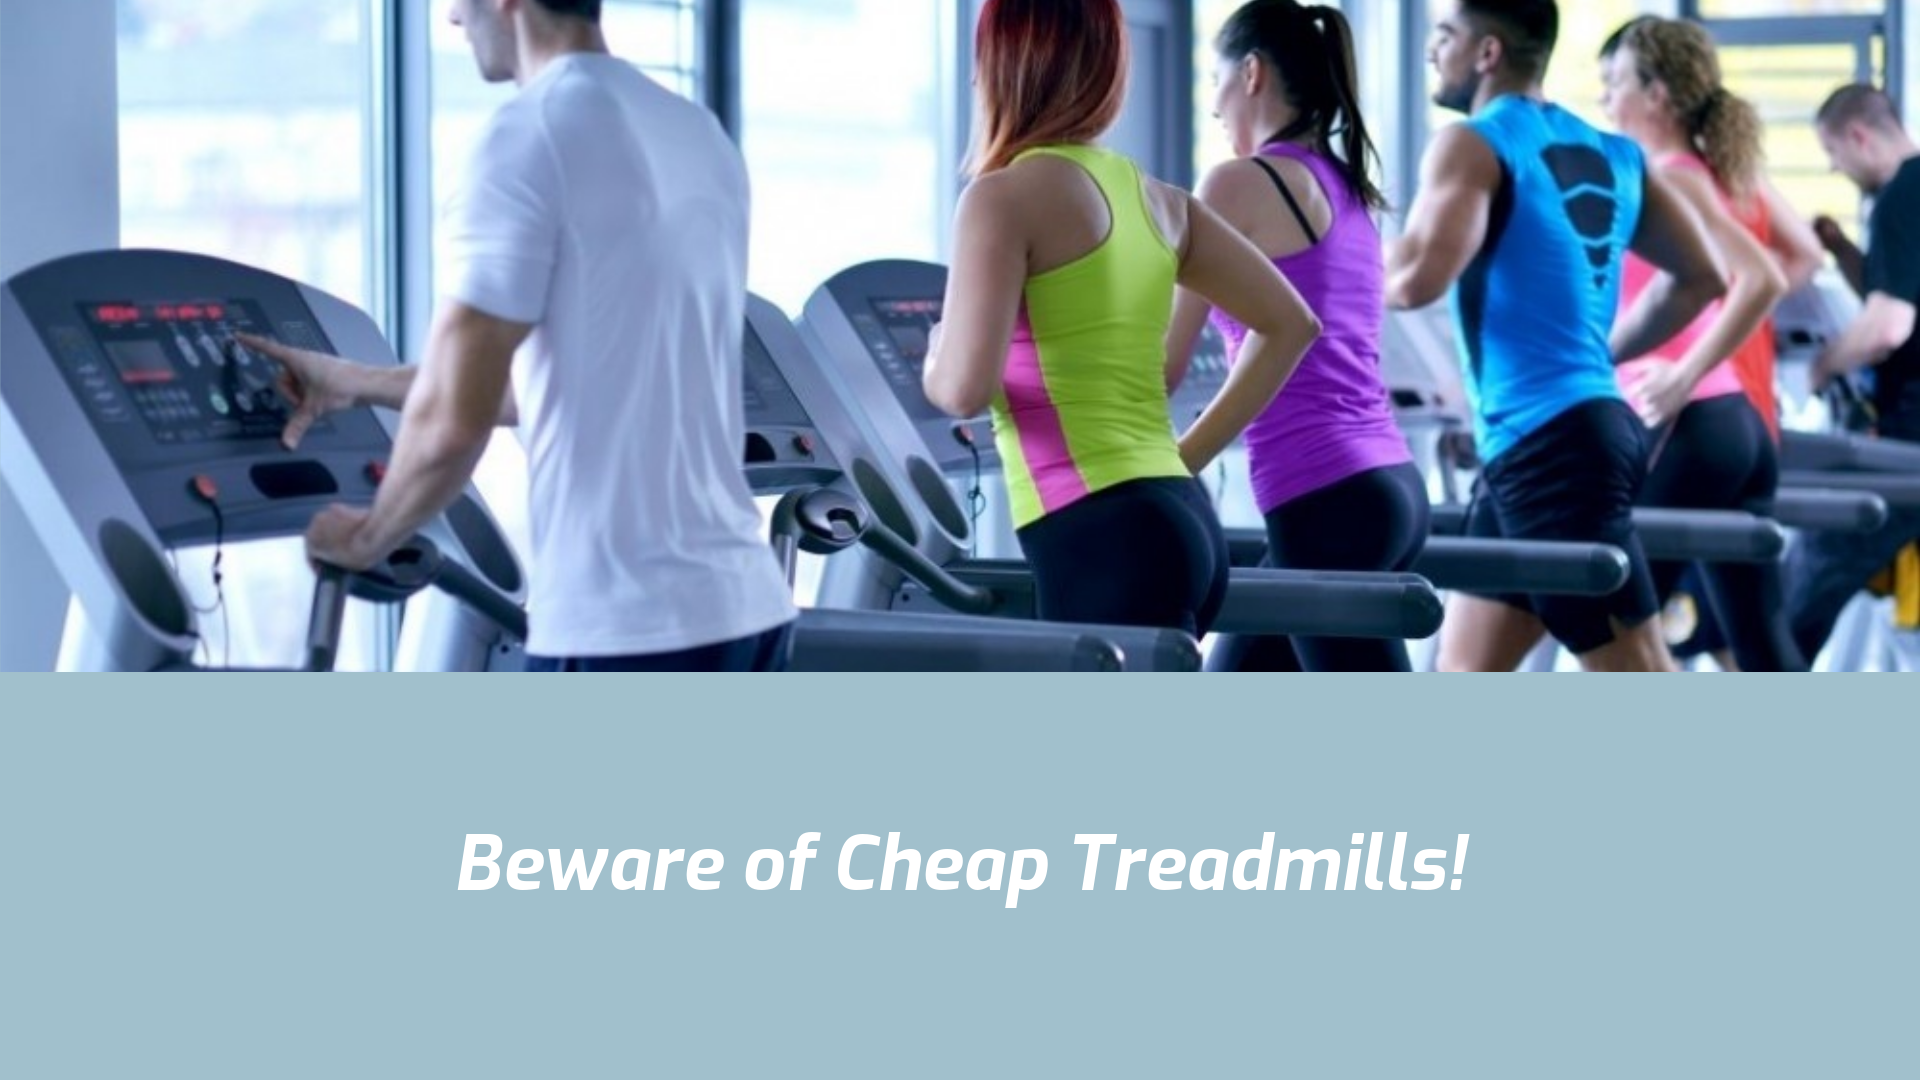 Beware of Cheap Treadmills